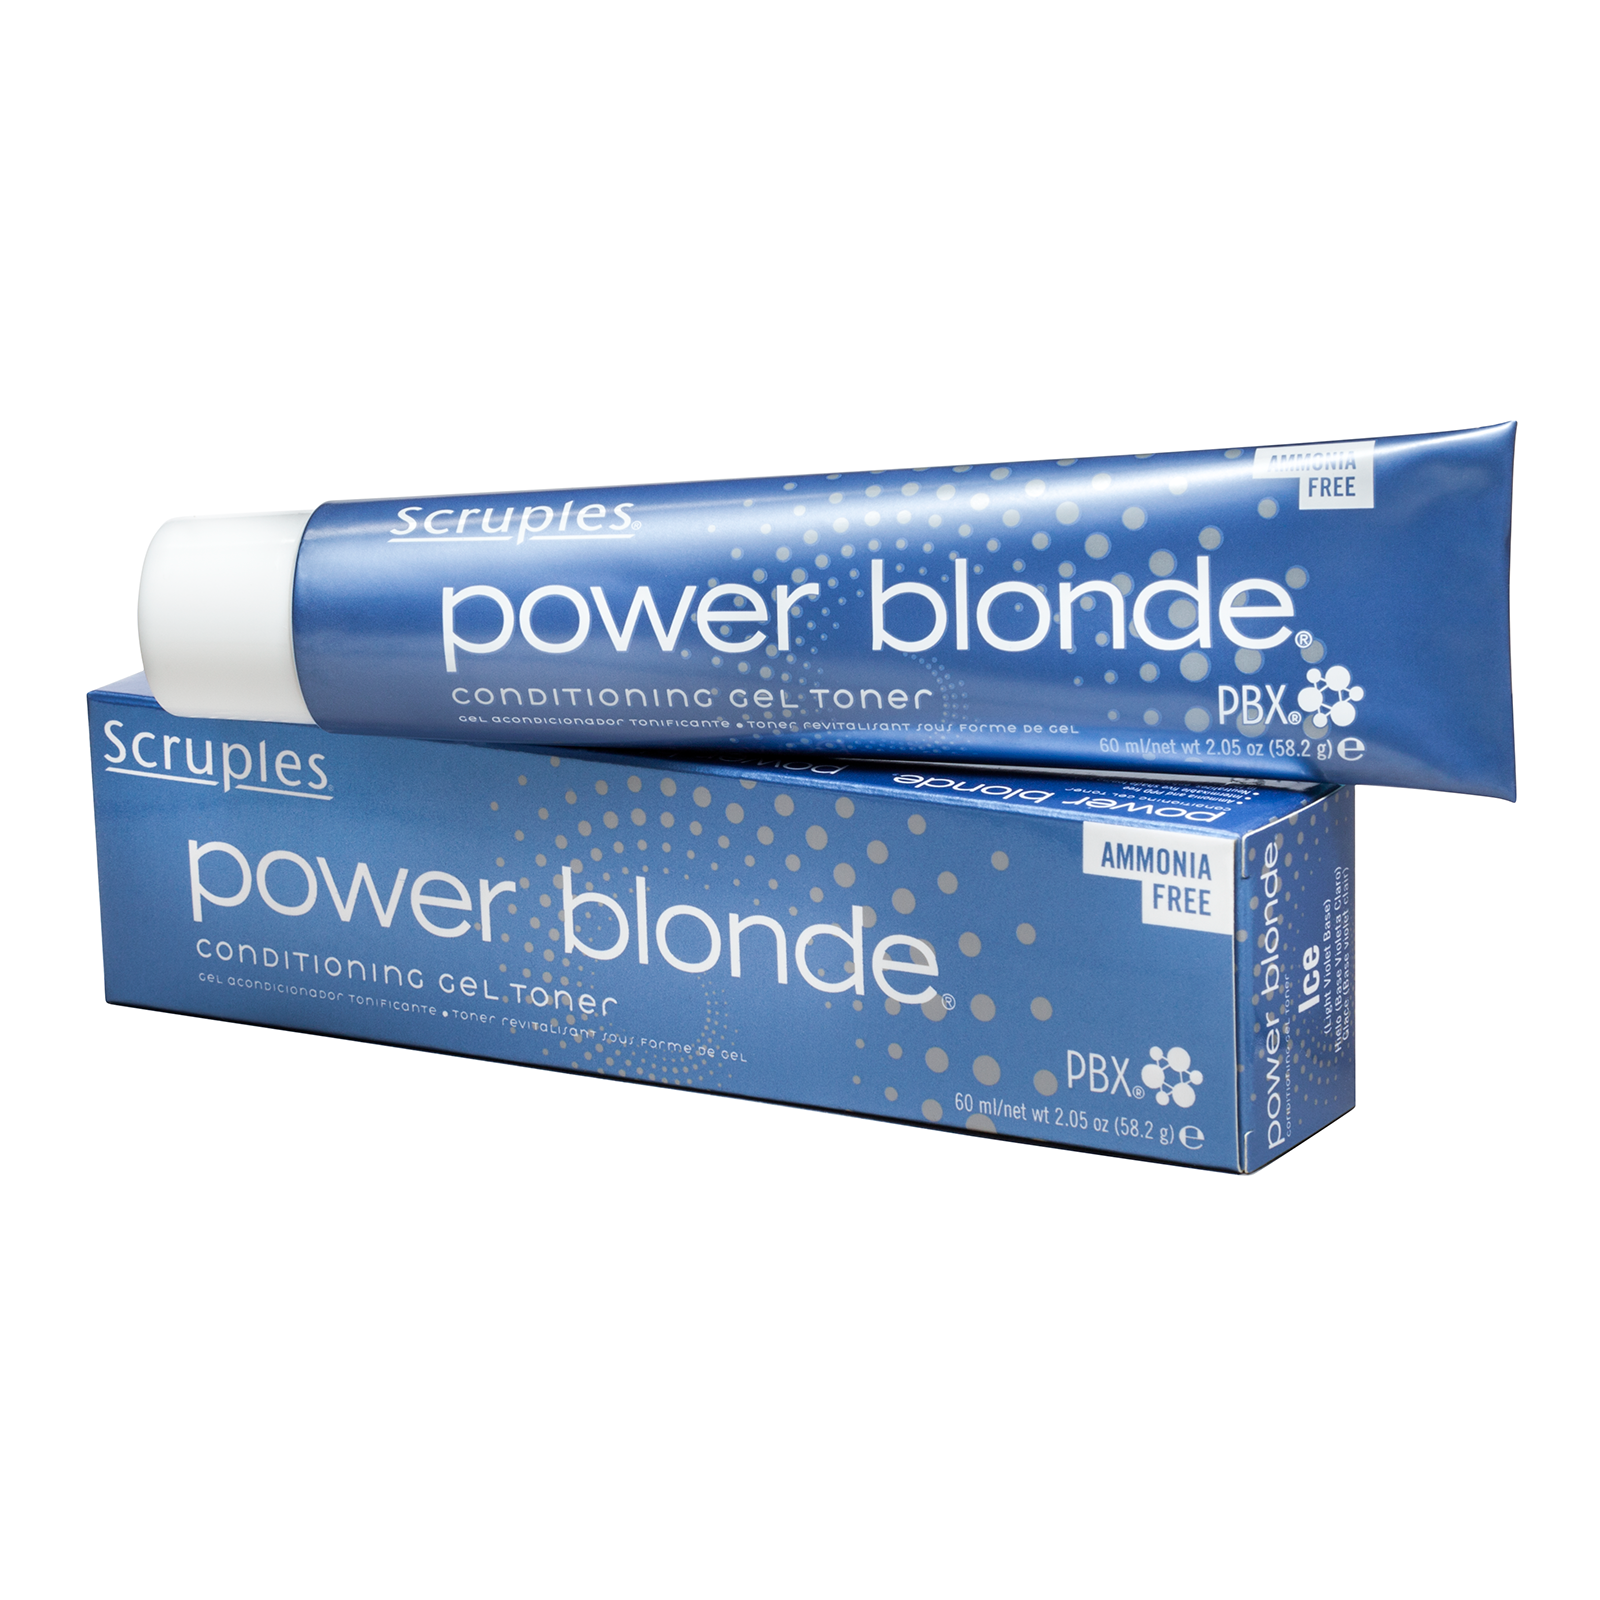 Power Blonde Conditioning Gel Toner - Caramel